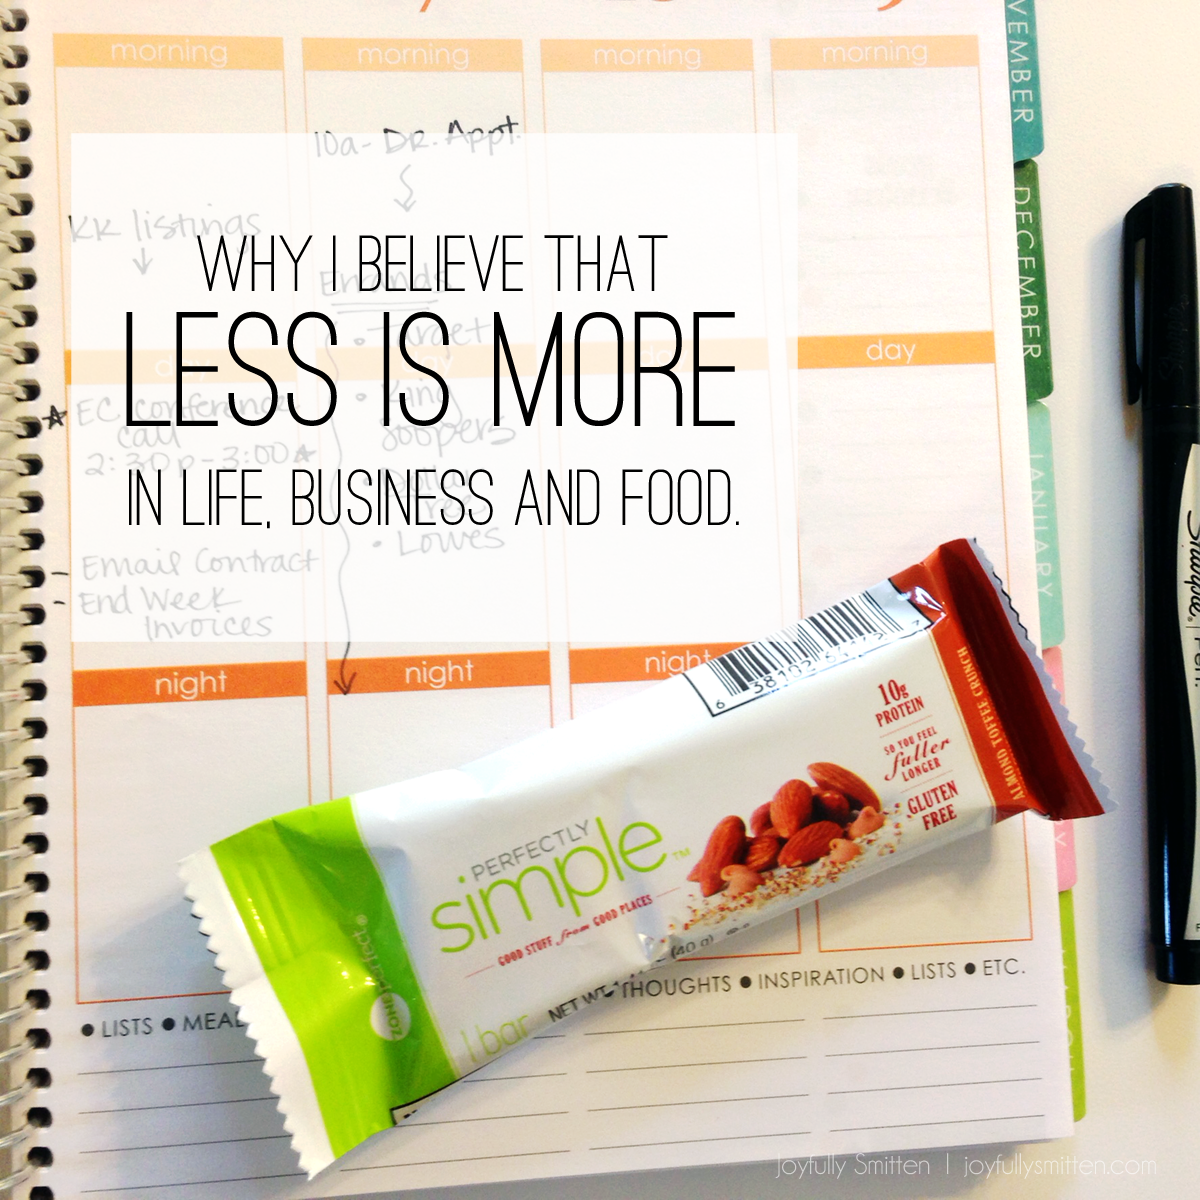 Why I Believe That Less is More In Life, Business and Food